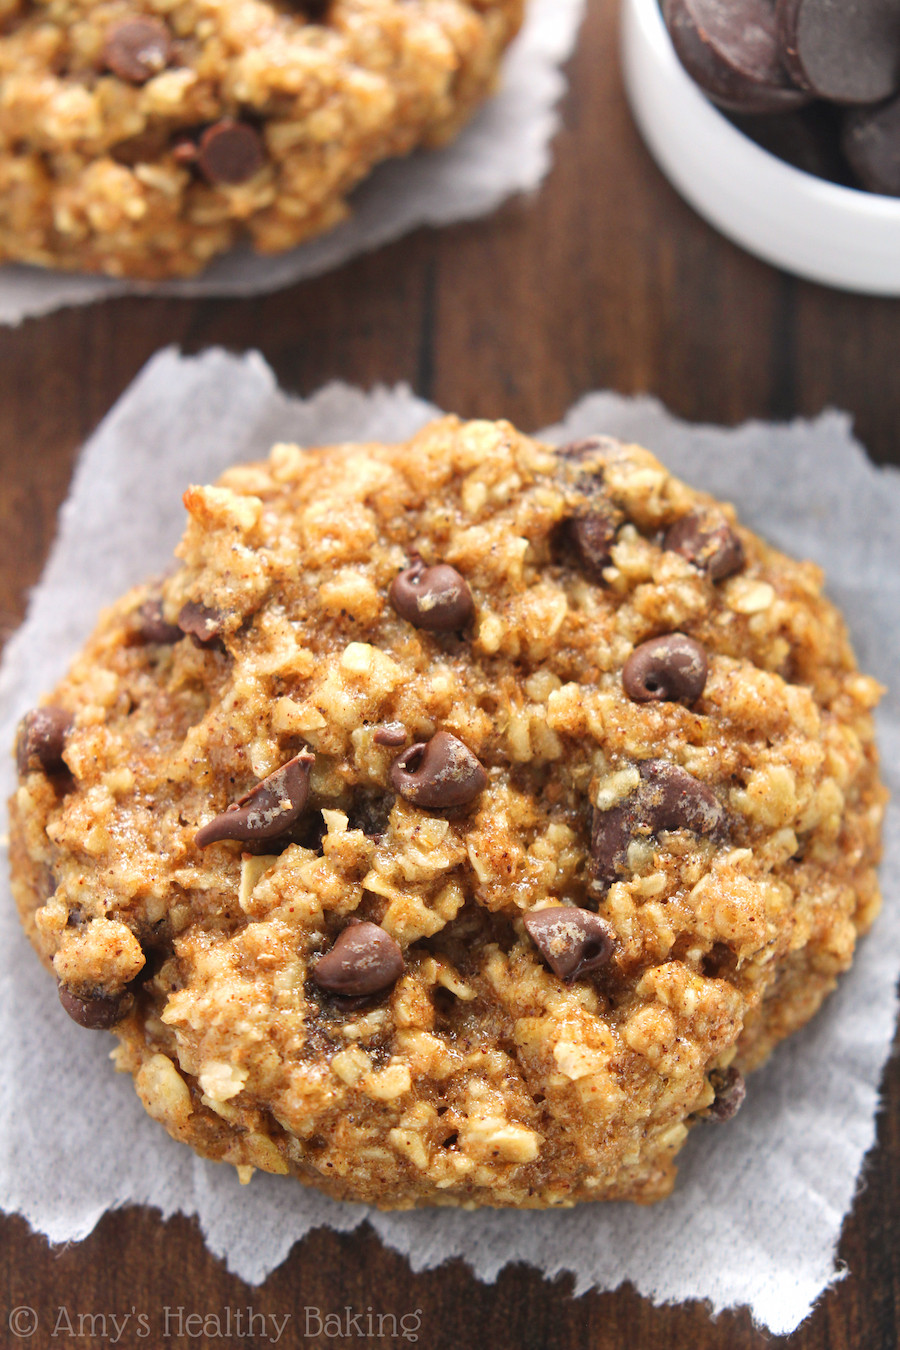 Healthy Chocolate Chip Cookies Recipe  Chocolate Chip Banana Bread Oatmeal Cookies